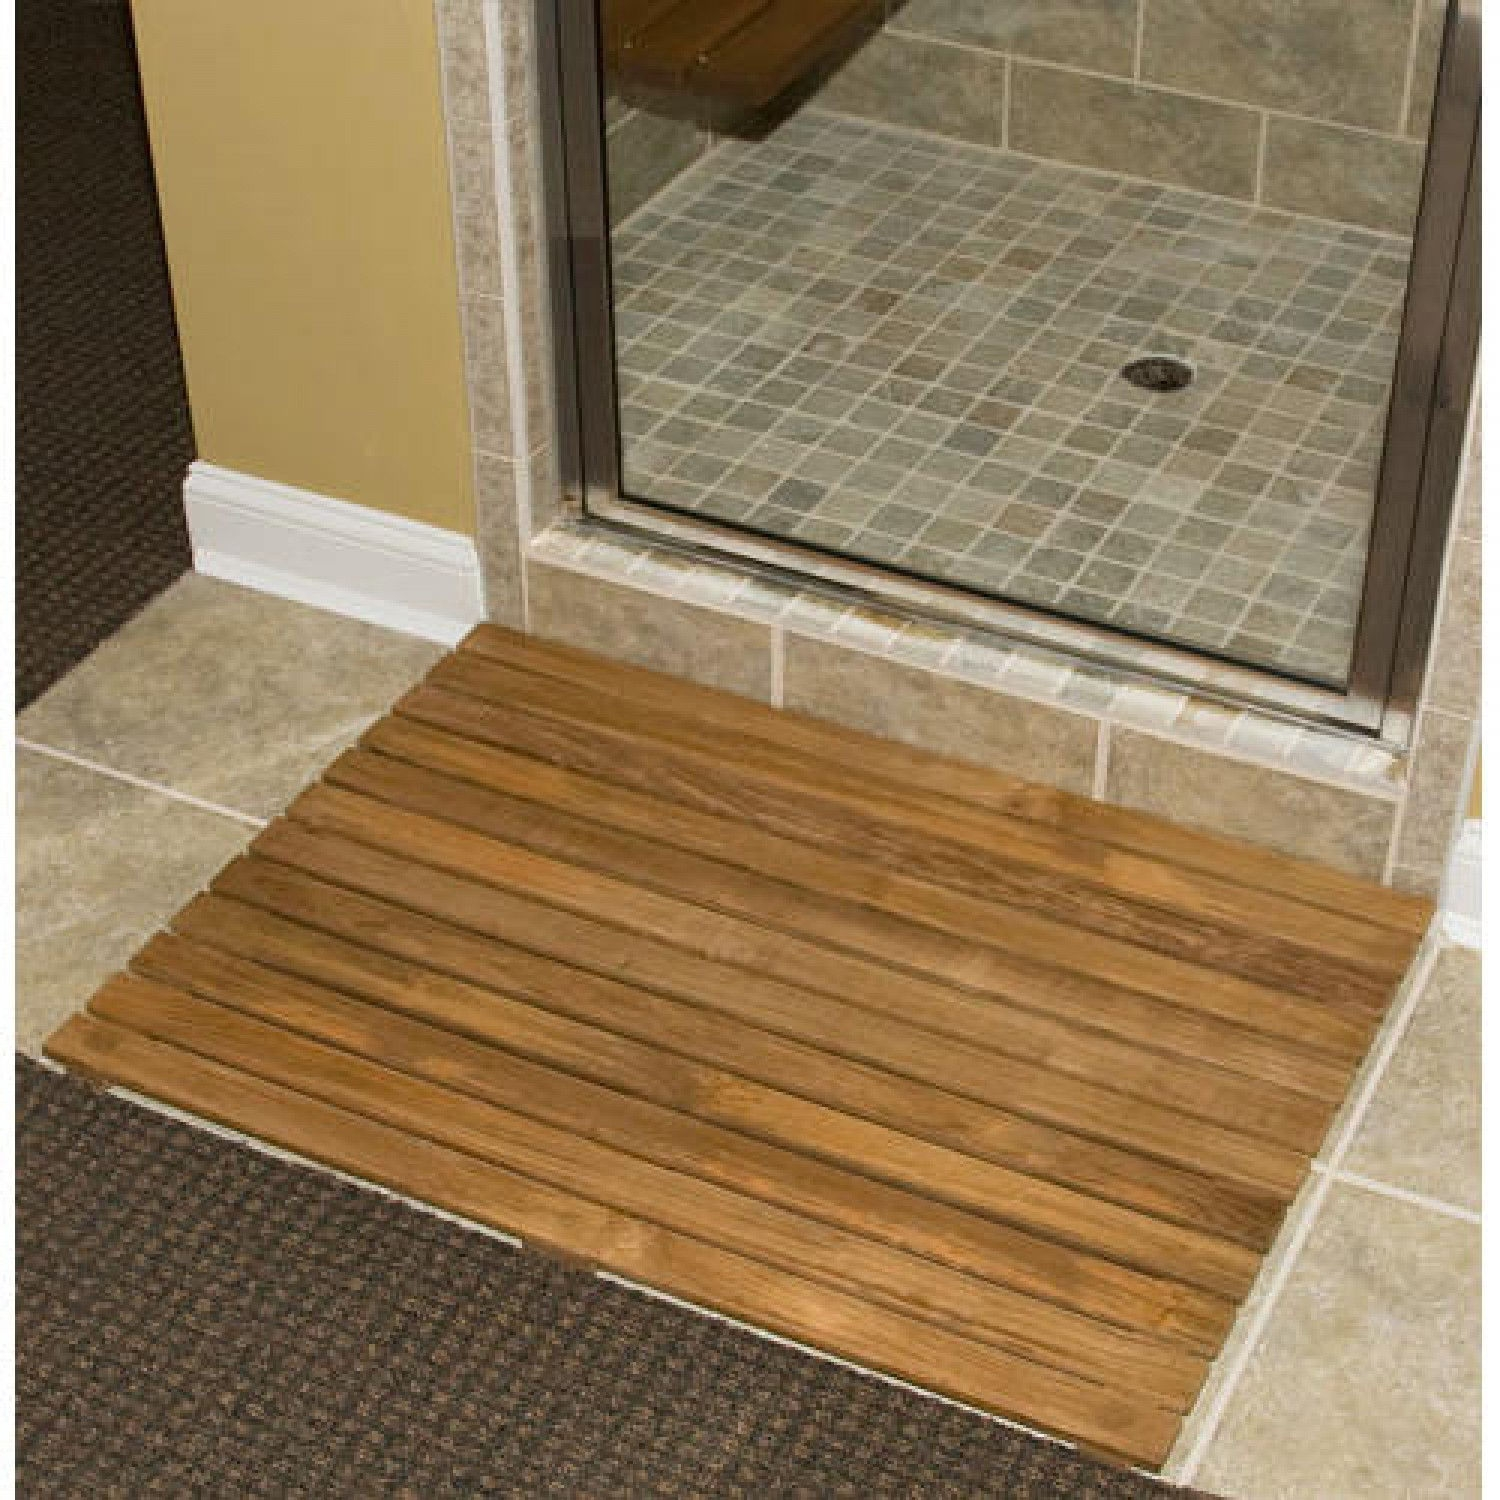 Best Shower Bath Mat